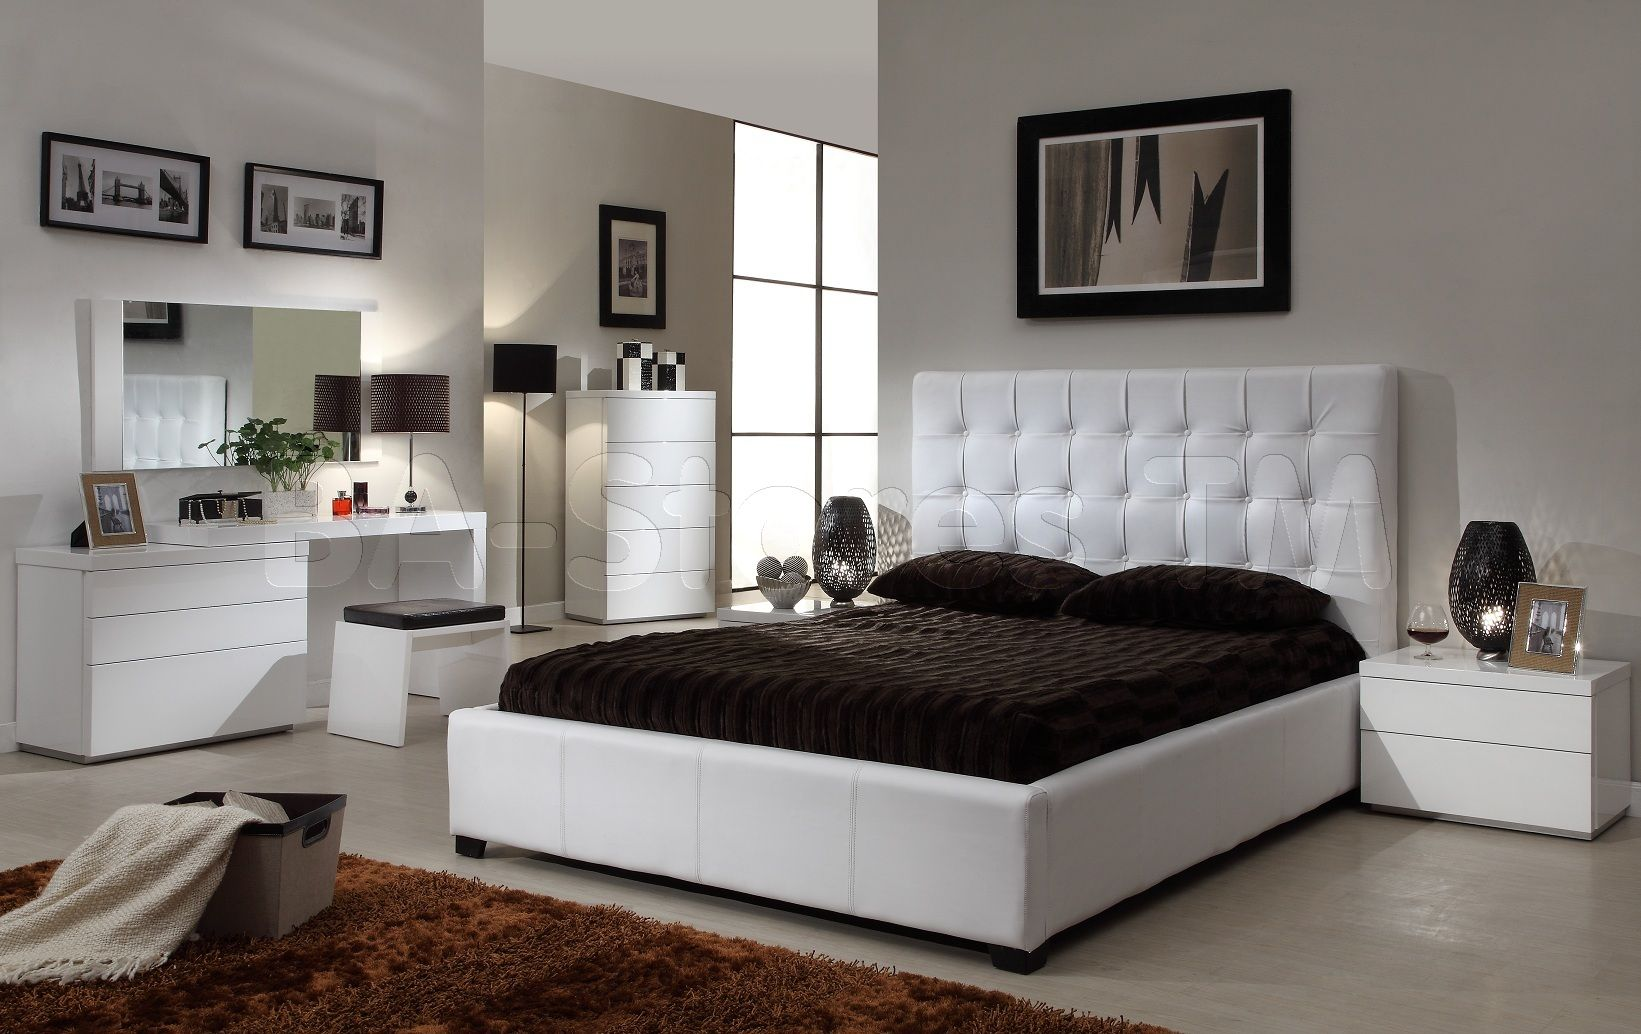 Athens pc white bedroom set bed nightstand dresser wall mirror